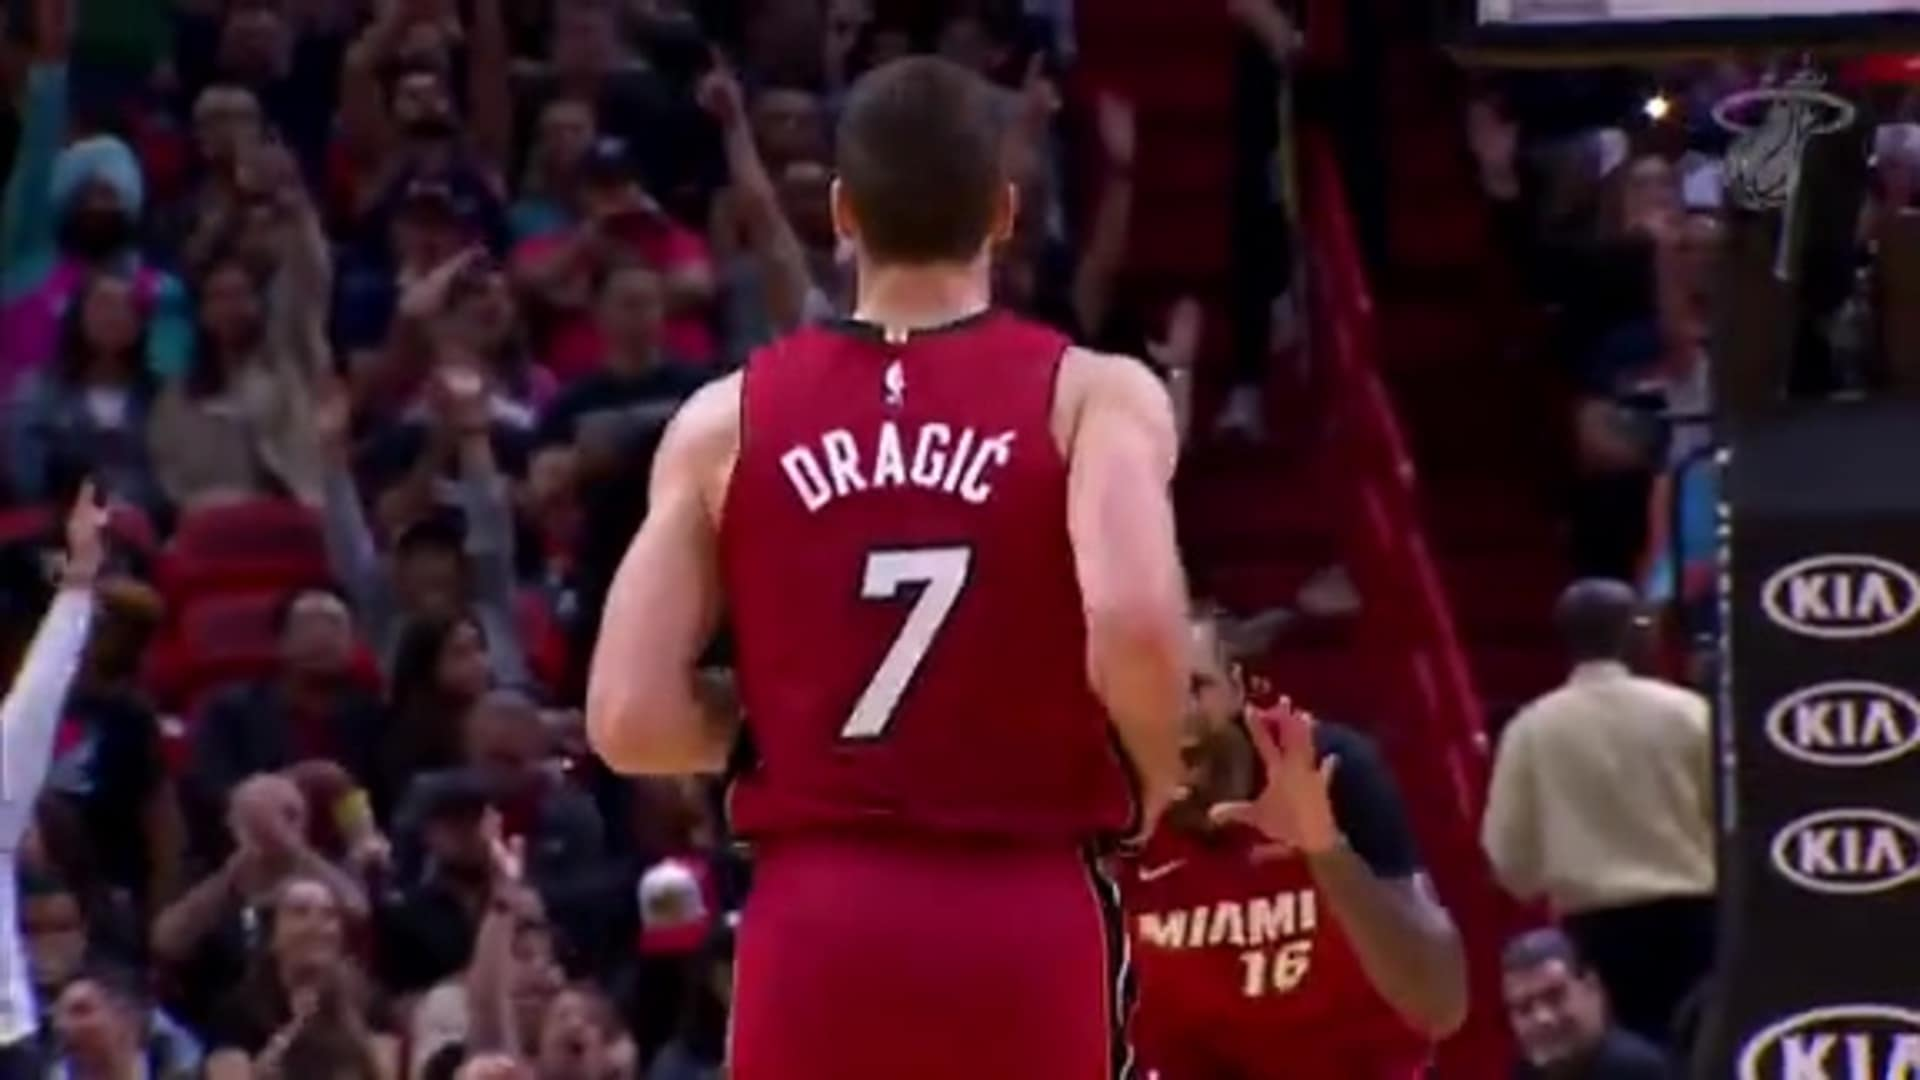 Dragic Nails 7 Threes